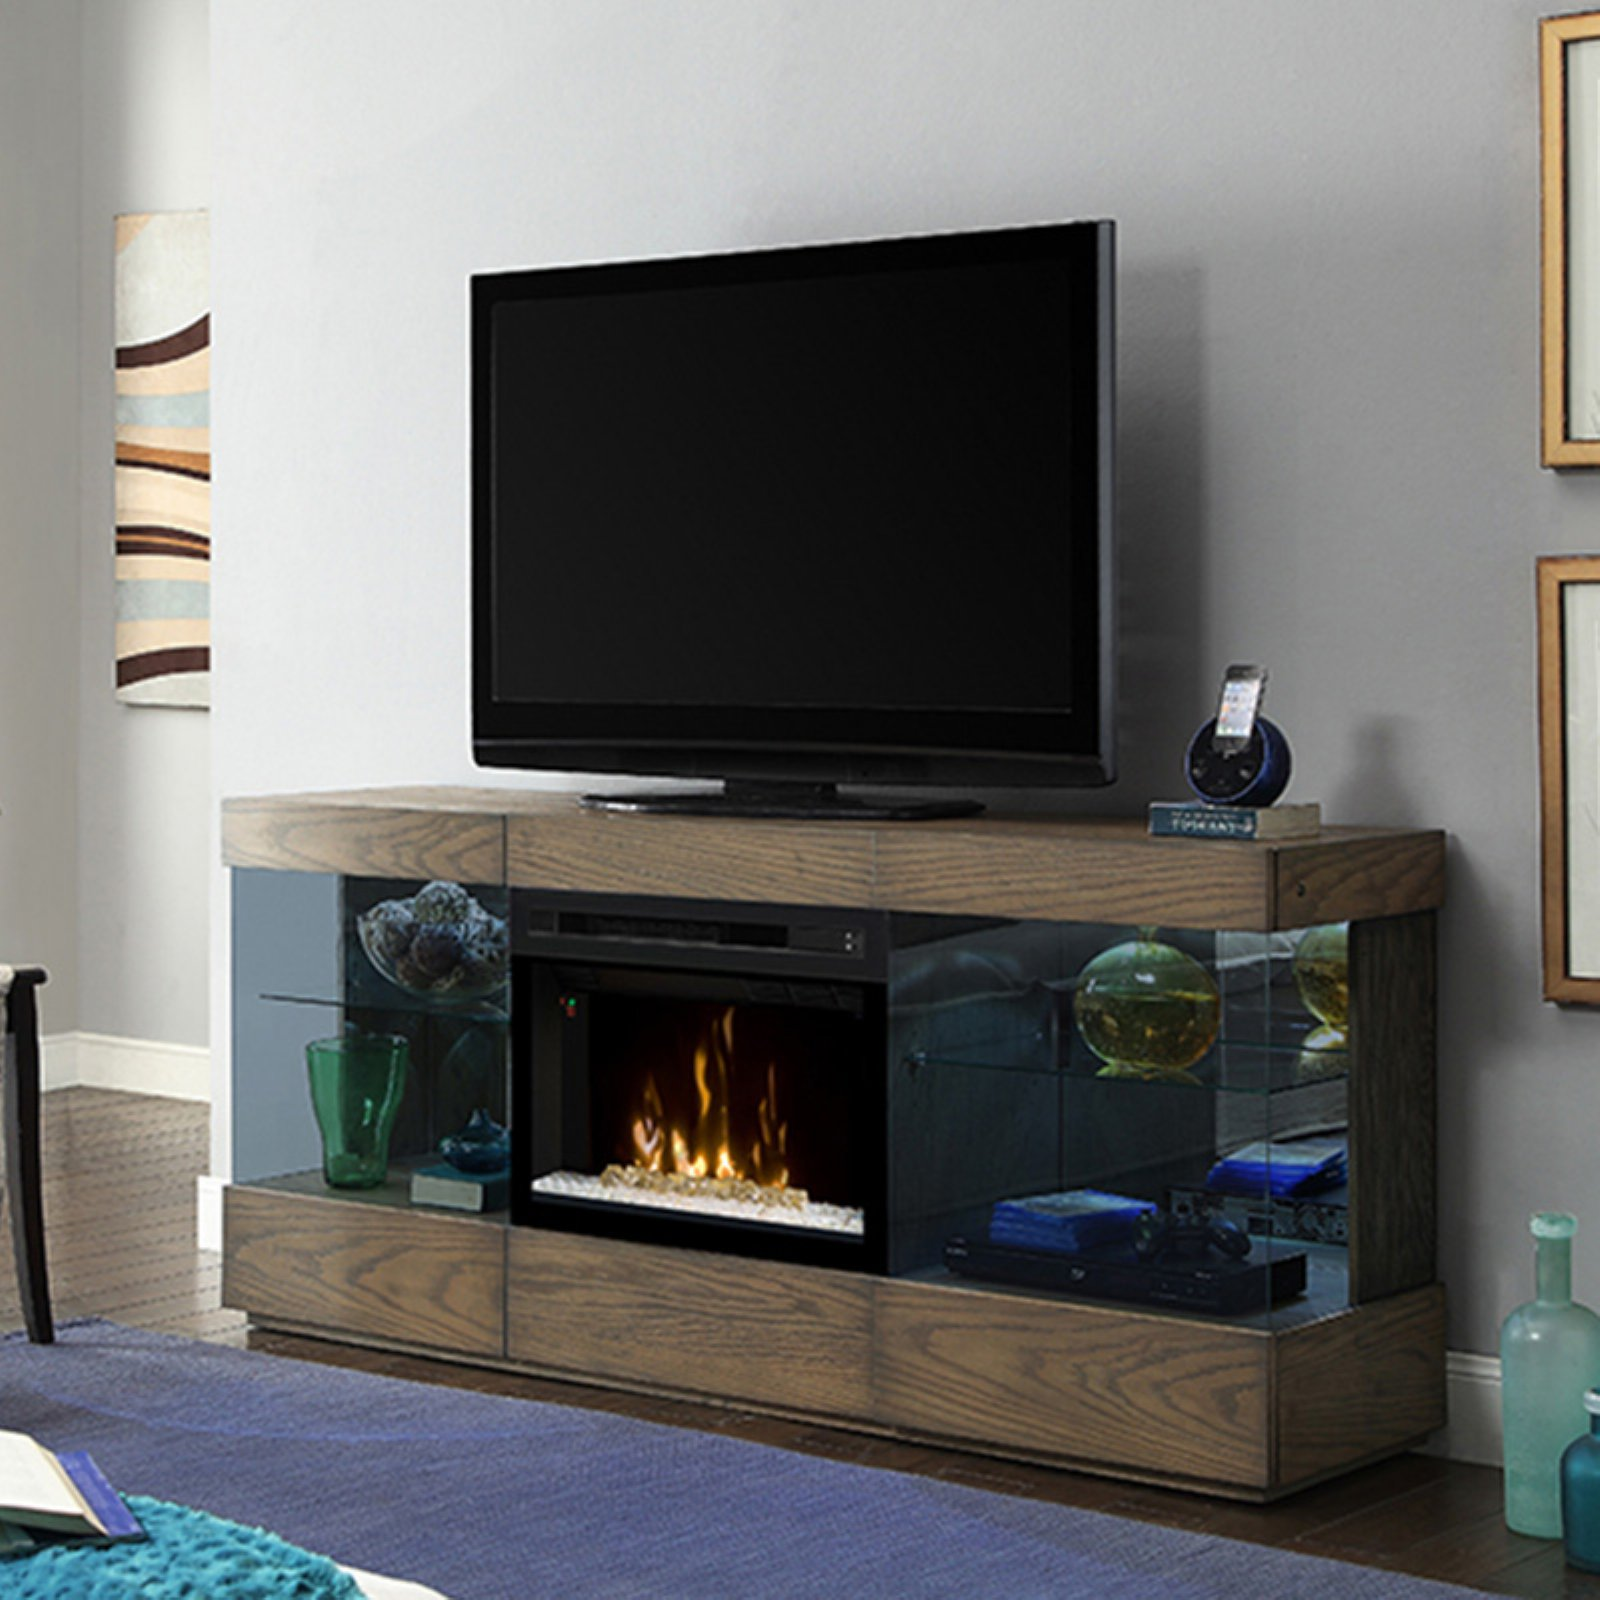 Dimplex Axel Media Console with Electric Fireplace